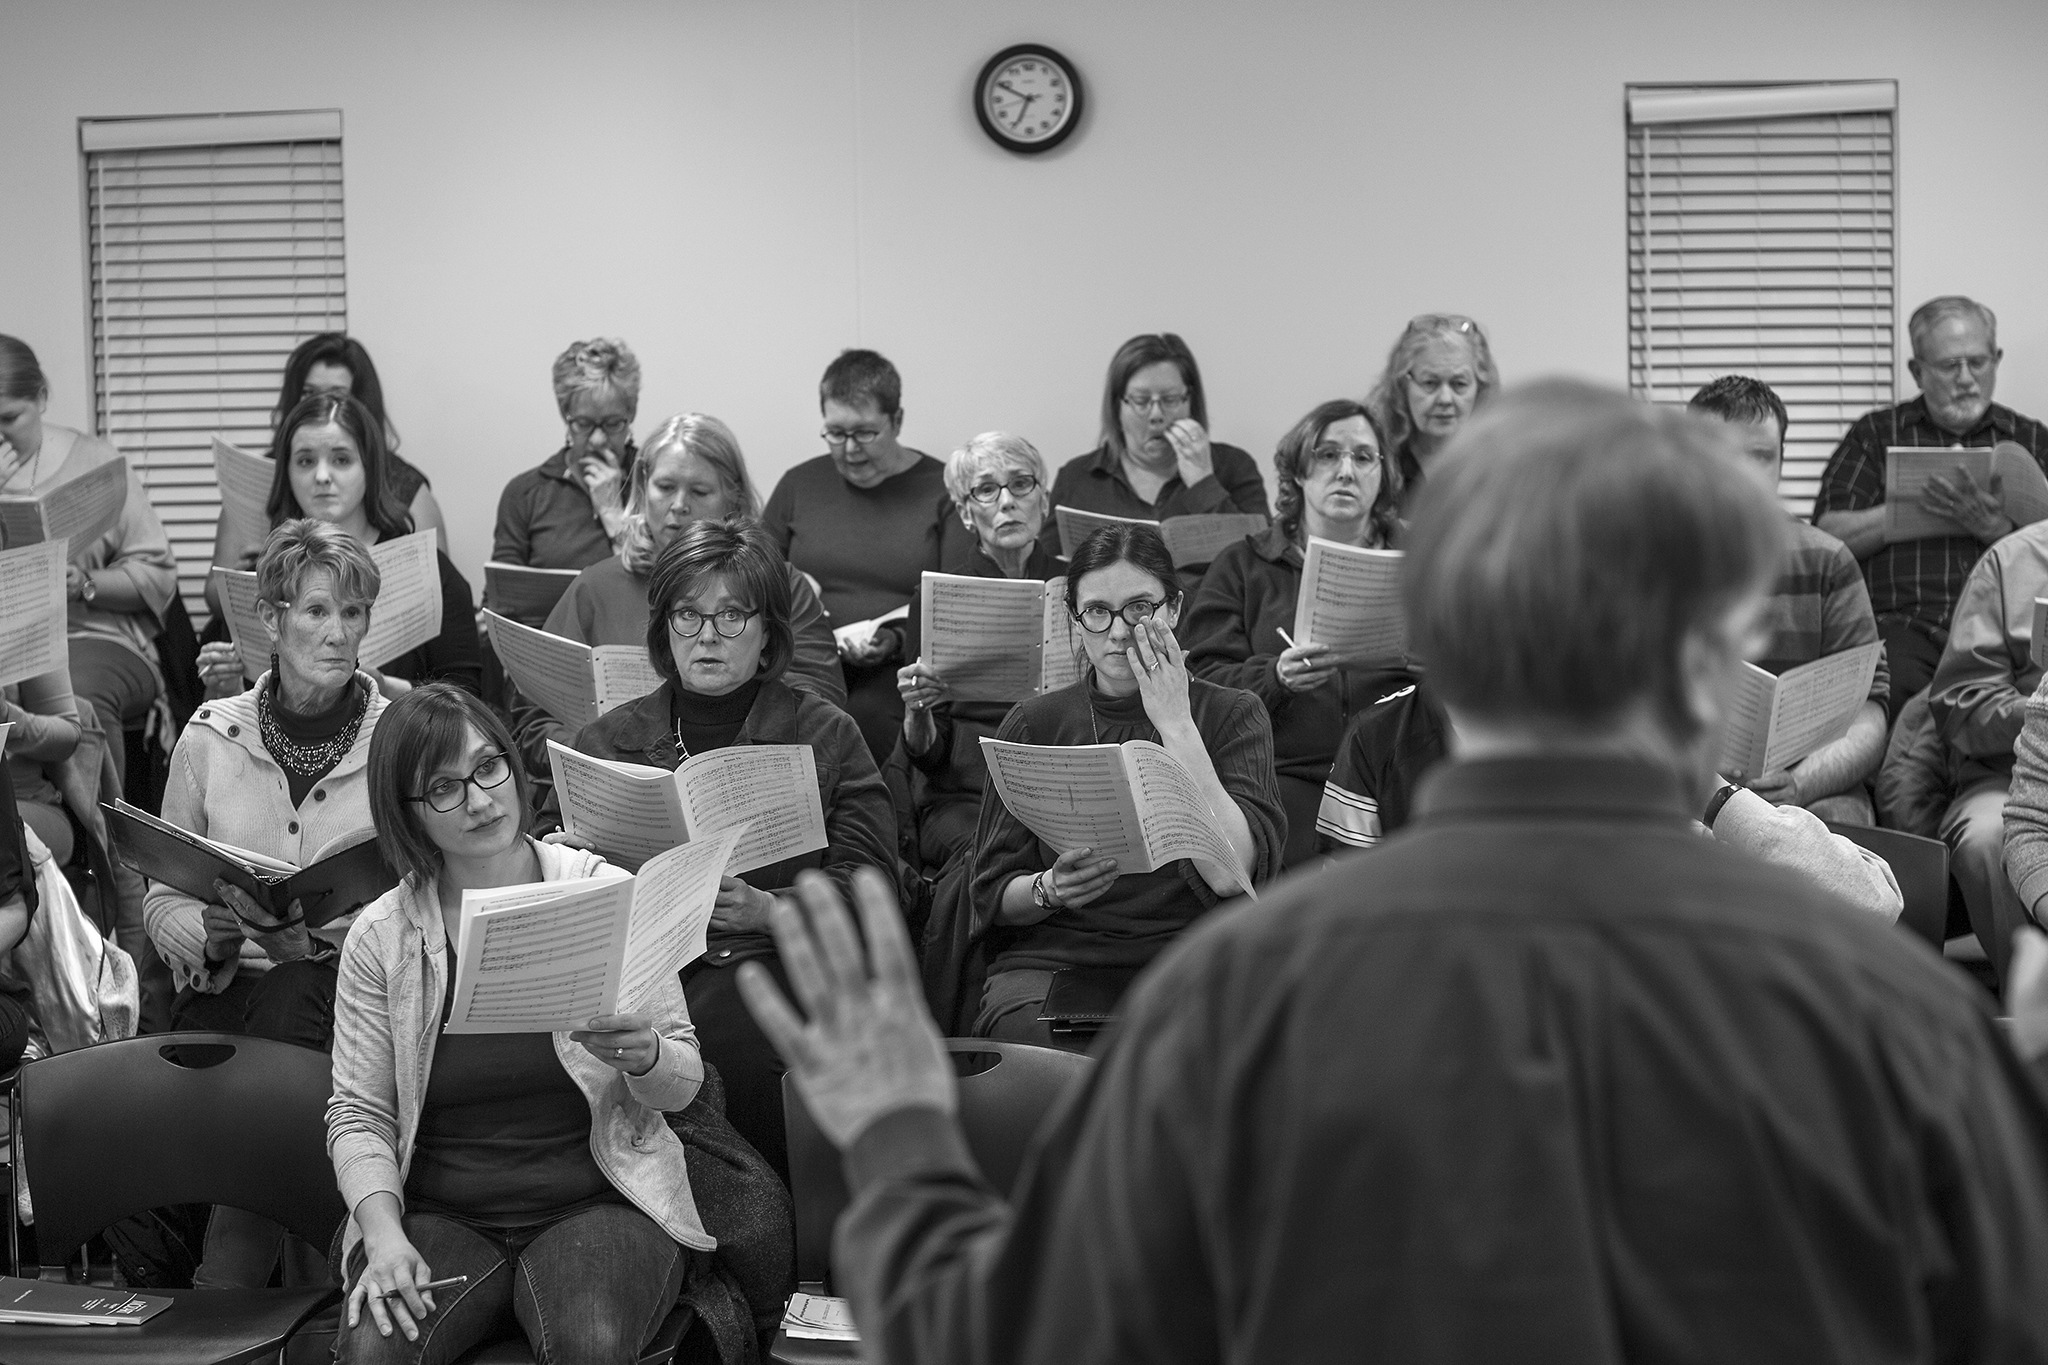 Selzer spends Sunday nights practicing with the Des Moines Choral Society; she has been a member for 20 years.